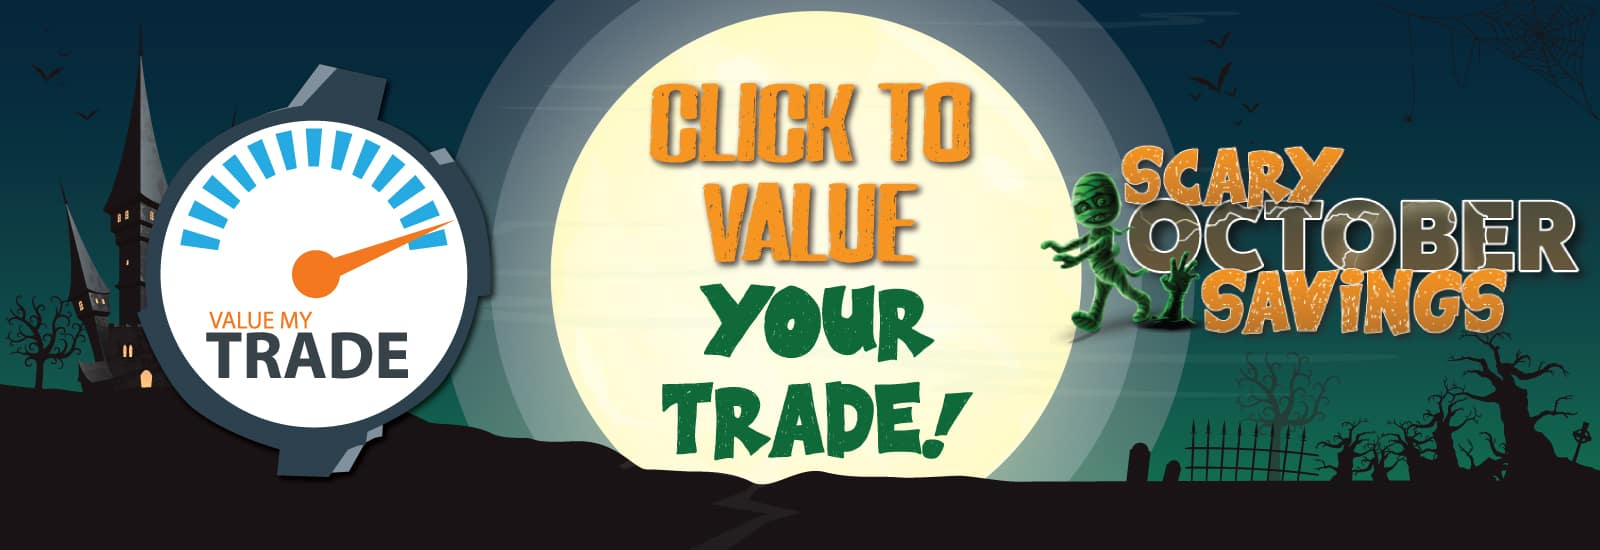 OctoberClick-To-Value-Your-Trade-Banner-1600×550